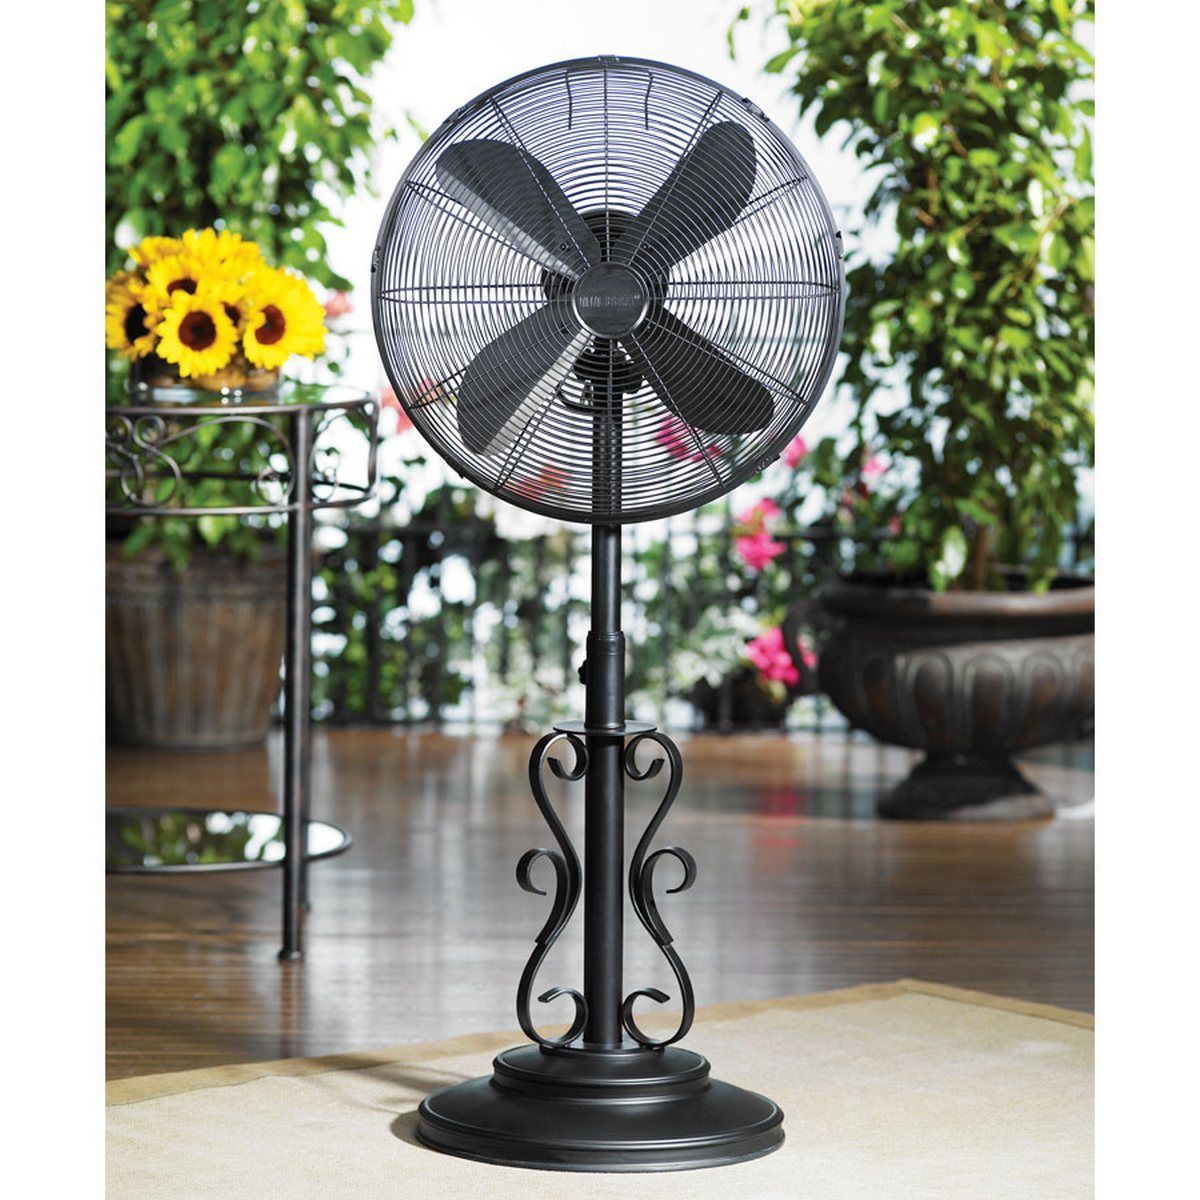 Decorative Pedestal Fan For Massandra Pedestal Fan Patio Fan